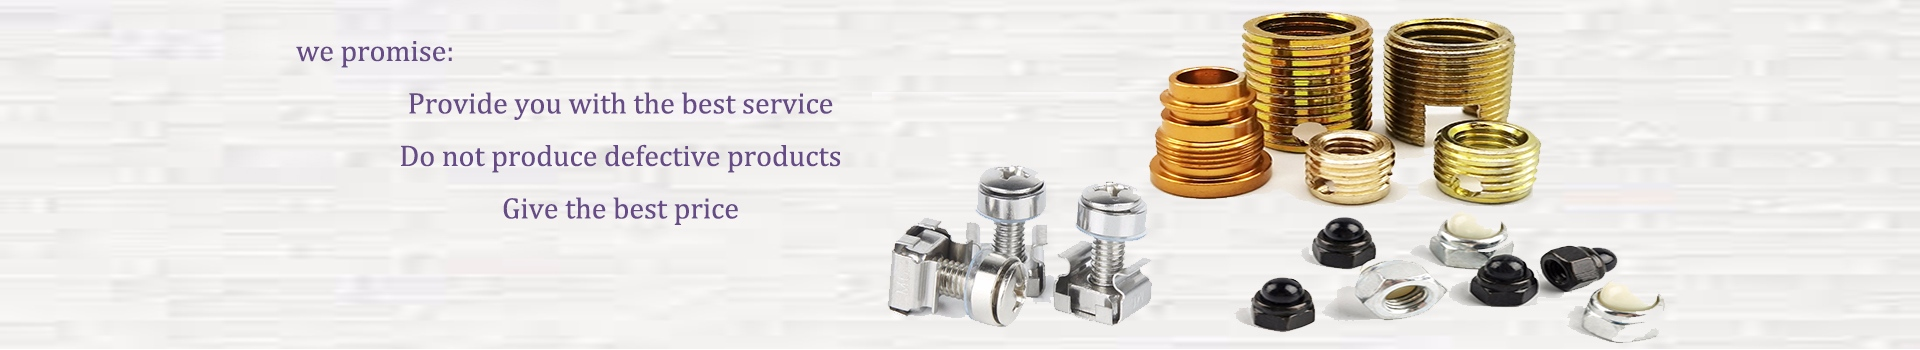 Dongguan Litian Hardware &Electrical Co.,Ltd